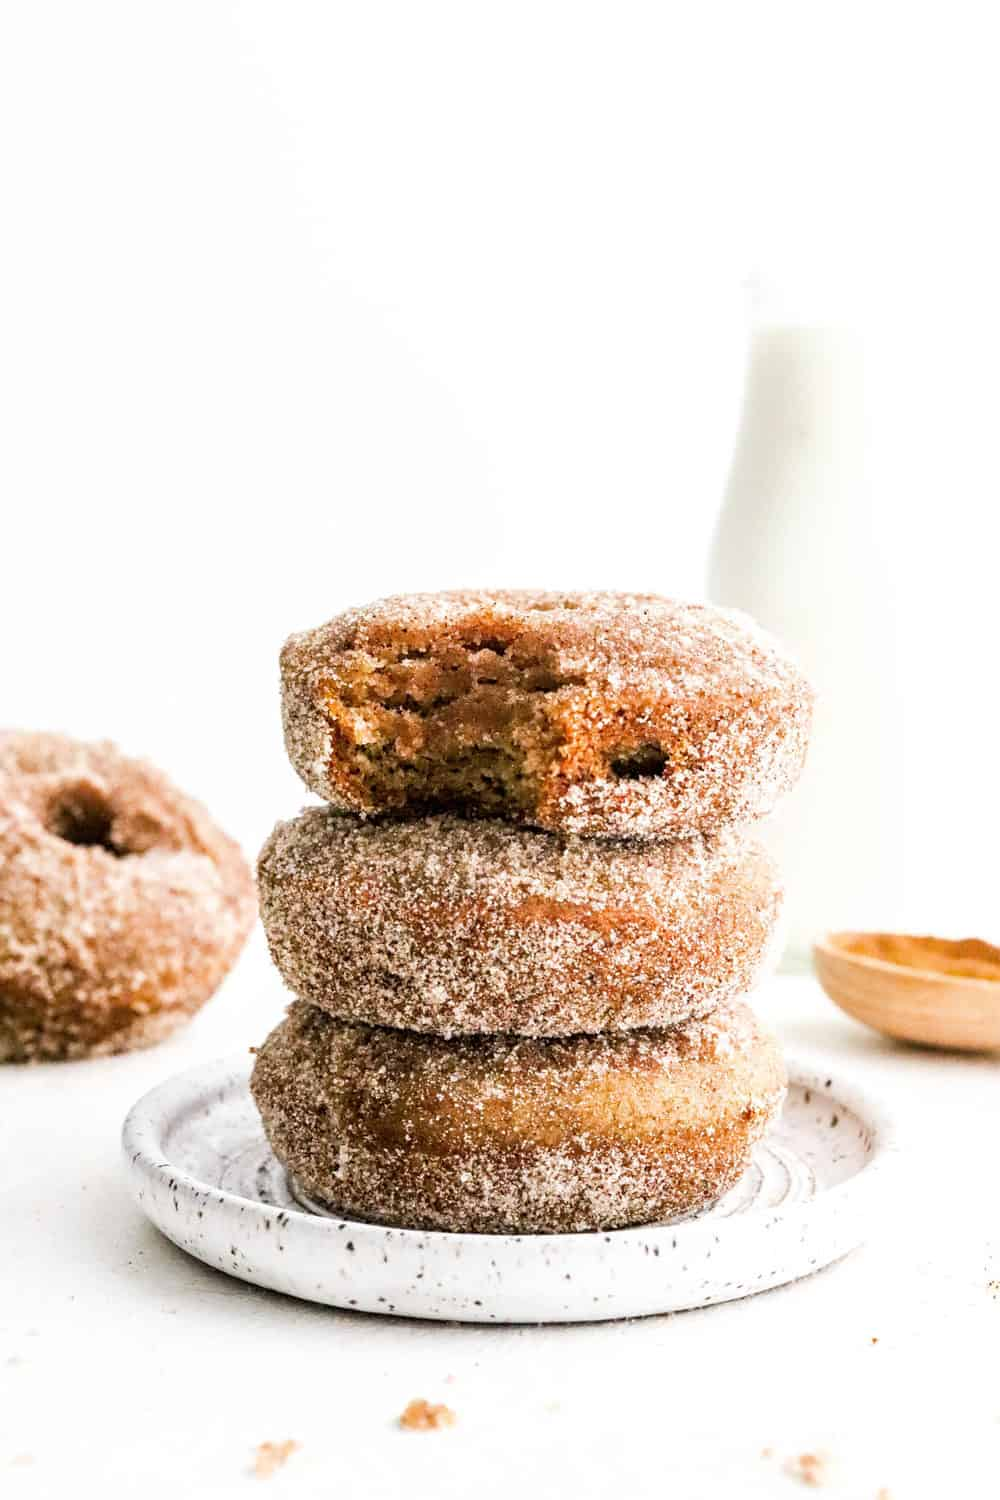 Stack of 3 sugar coating brown apple donuts on a round white plate with more donuts behind it with a bit taken out of one of the donuts.